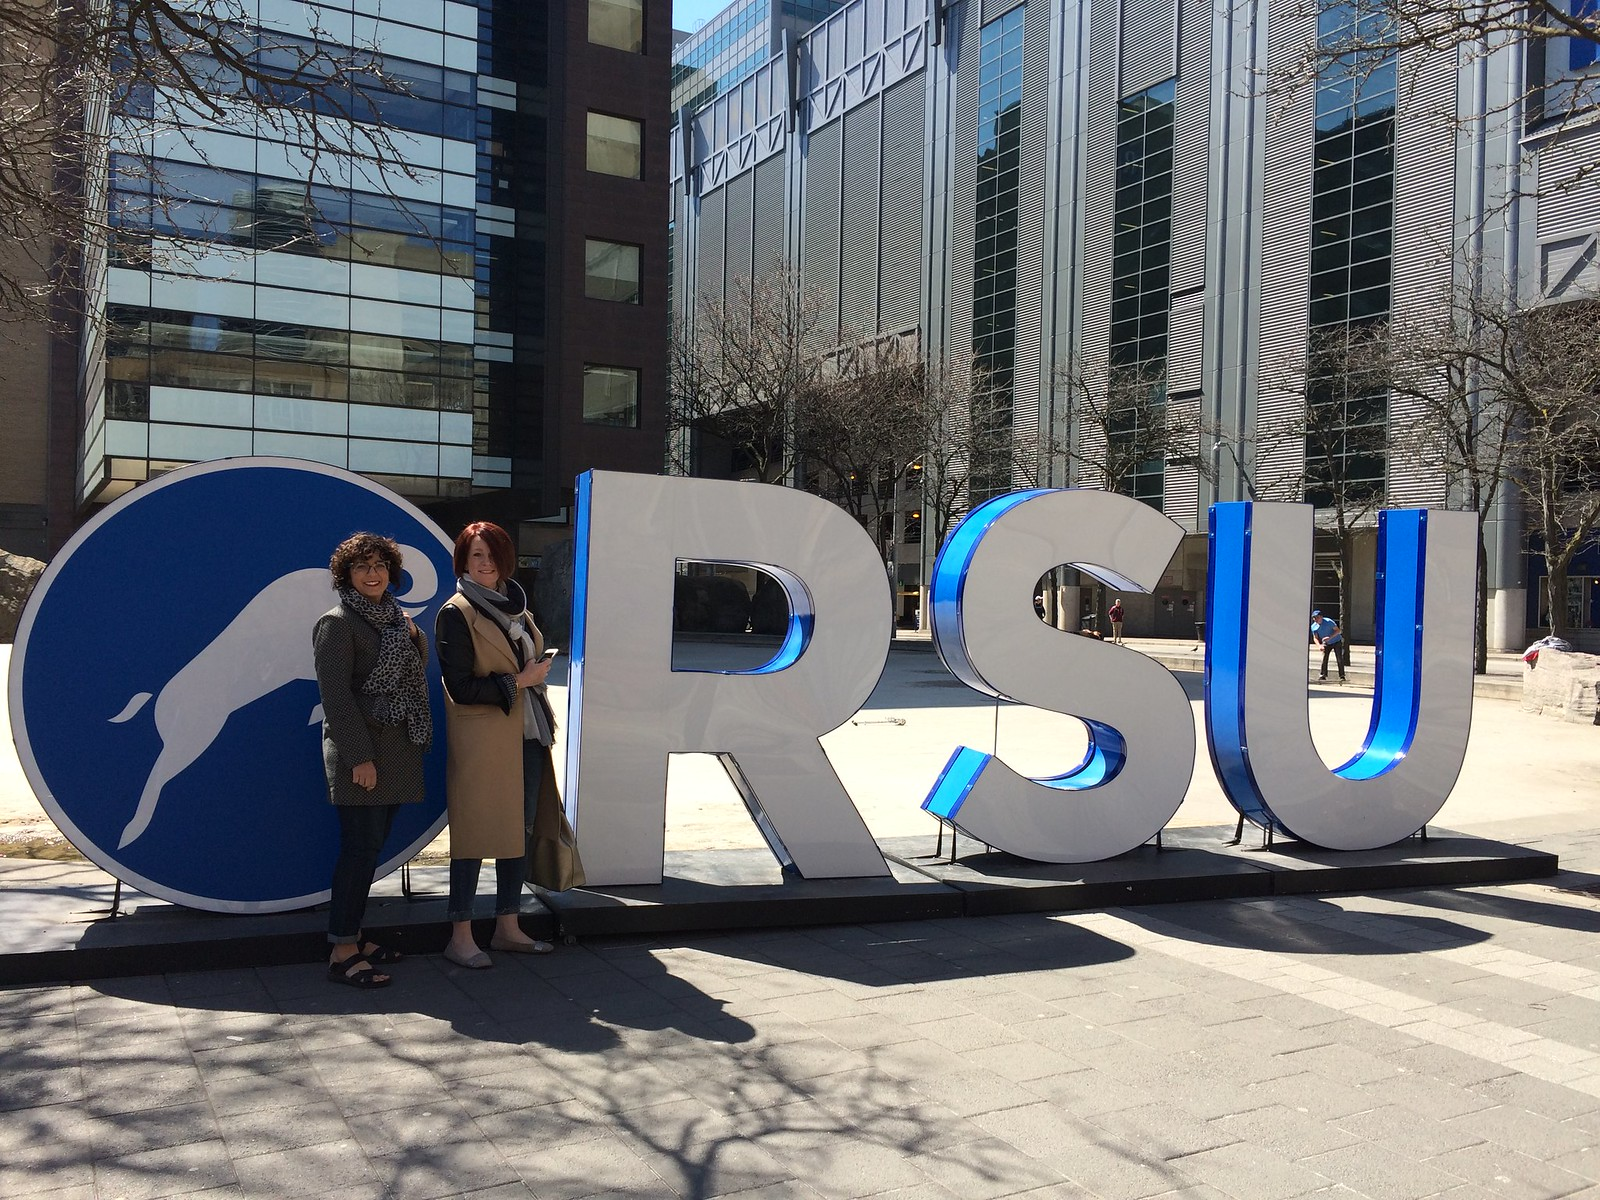 standing in front of the RSU sign on campus